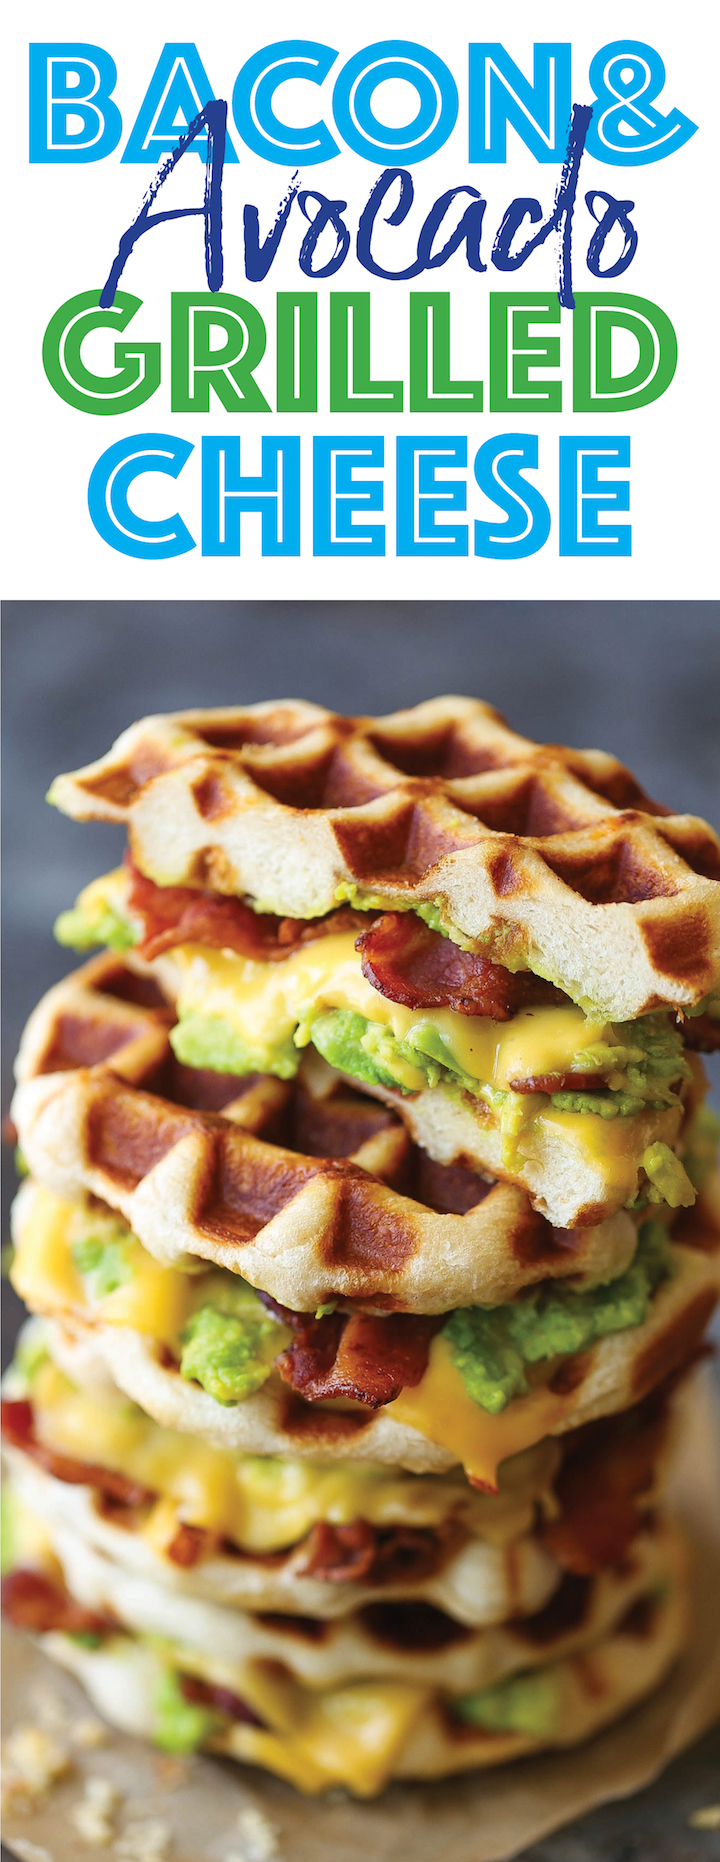 Bacon and Avocado Waffle Grilled Cheese - Crisp bacon, creamy avocado and melted cheesy goodness made right in a waffle iron! Easy peasy and mess-free!